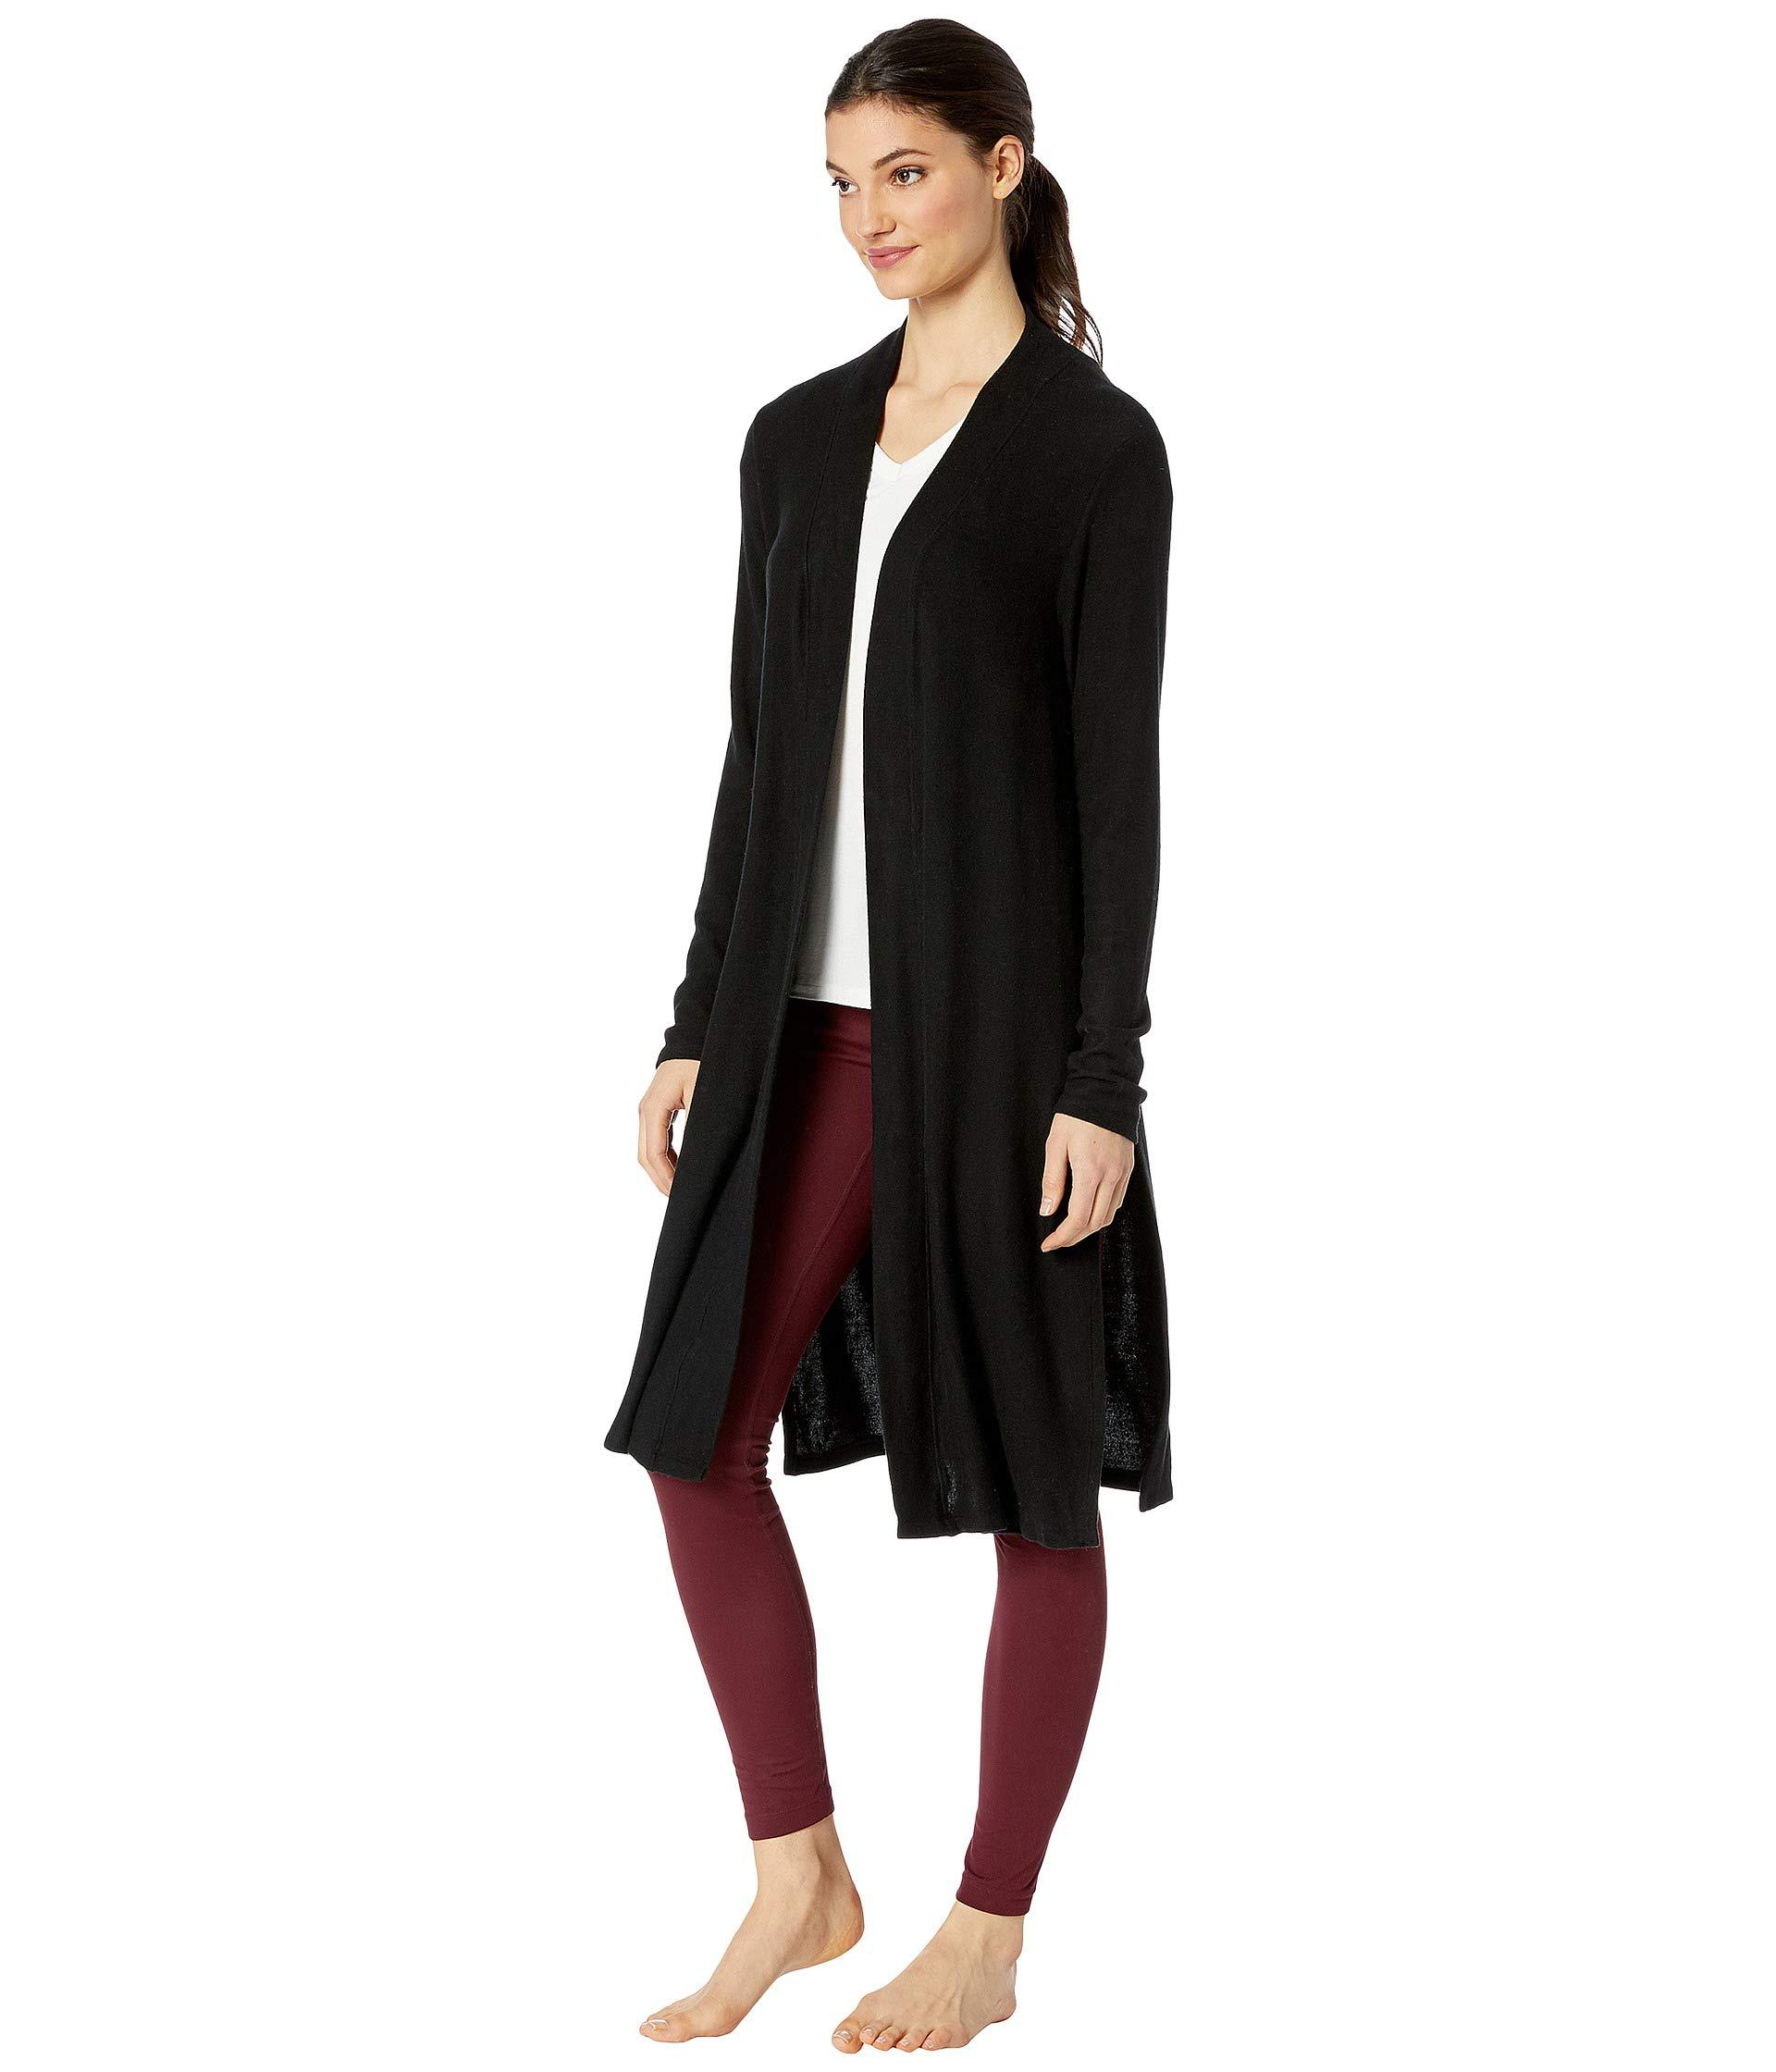 771093e9f1 Lyst - Beyond Yoga High Slits Long Duster (oatmeal Heather) Women's Sweater  in Black